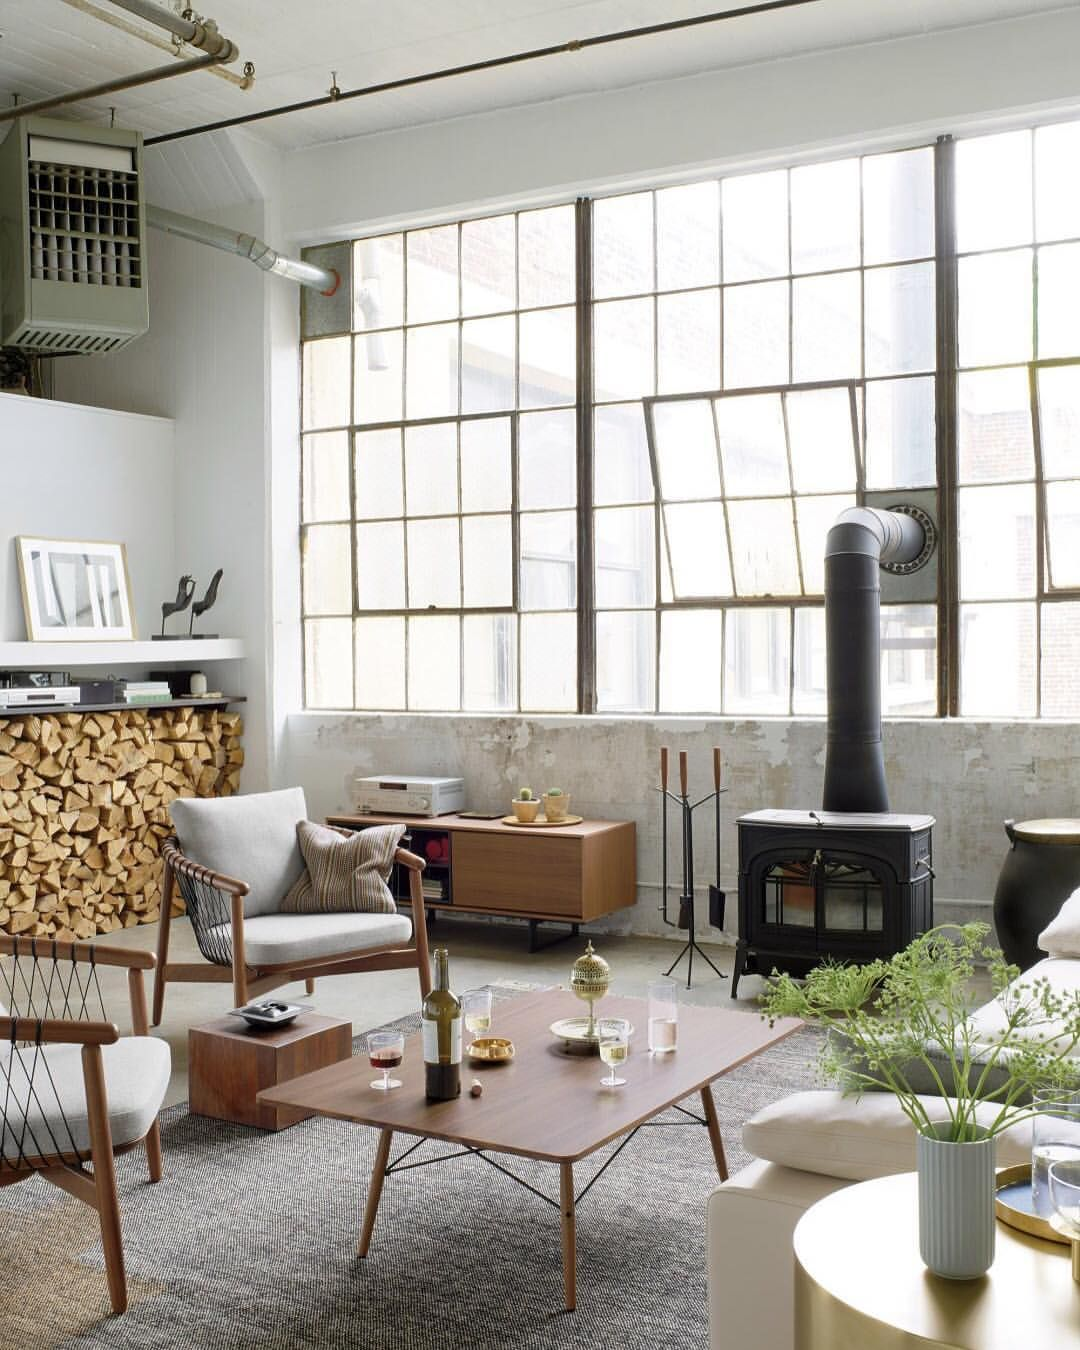 Get Inspired to Turn Your Industrial Home Design Around! | Instagram ...